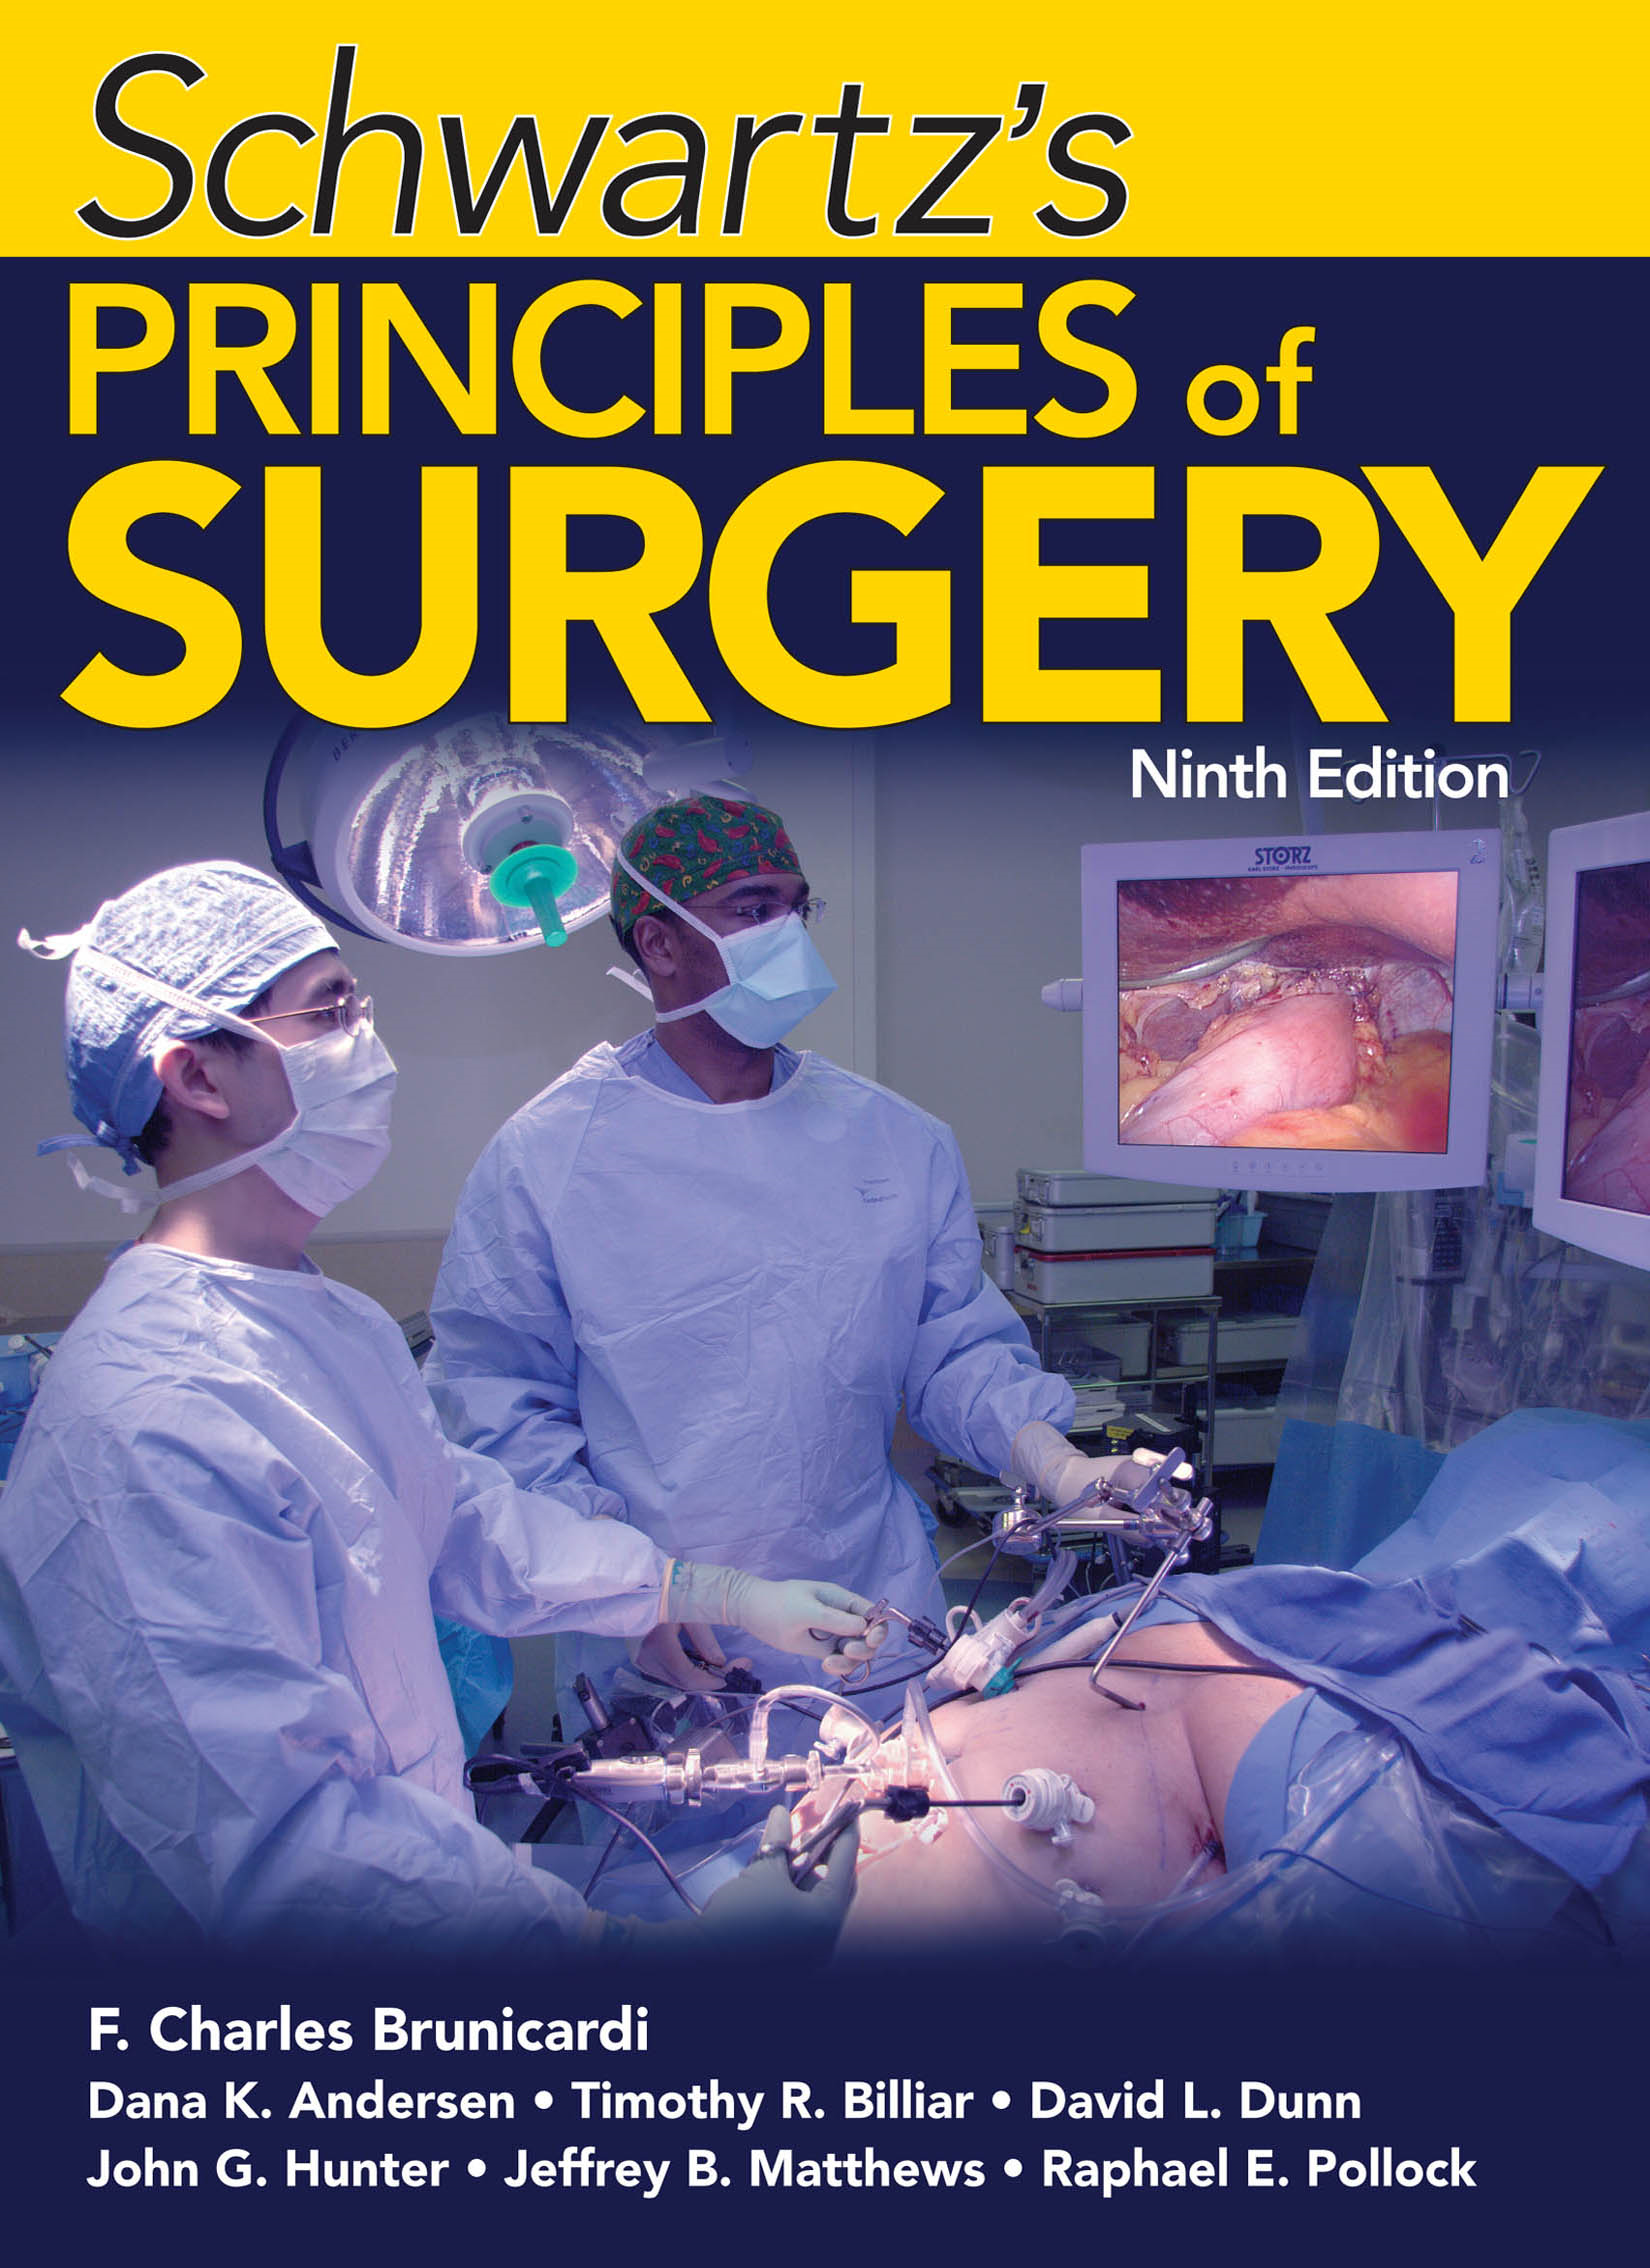 Schwartz's Principles of Surgery, Ninth Edition